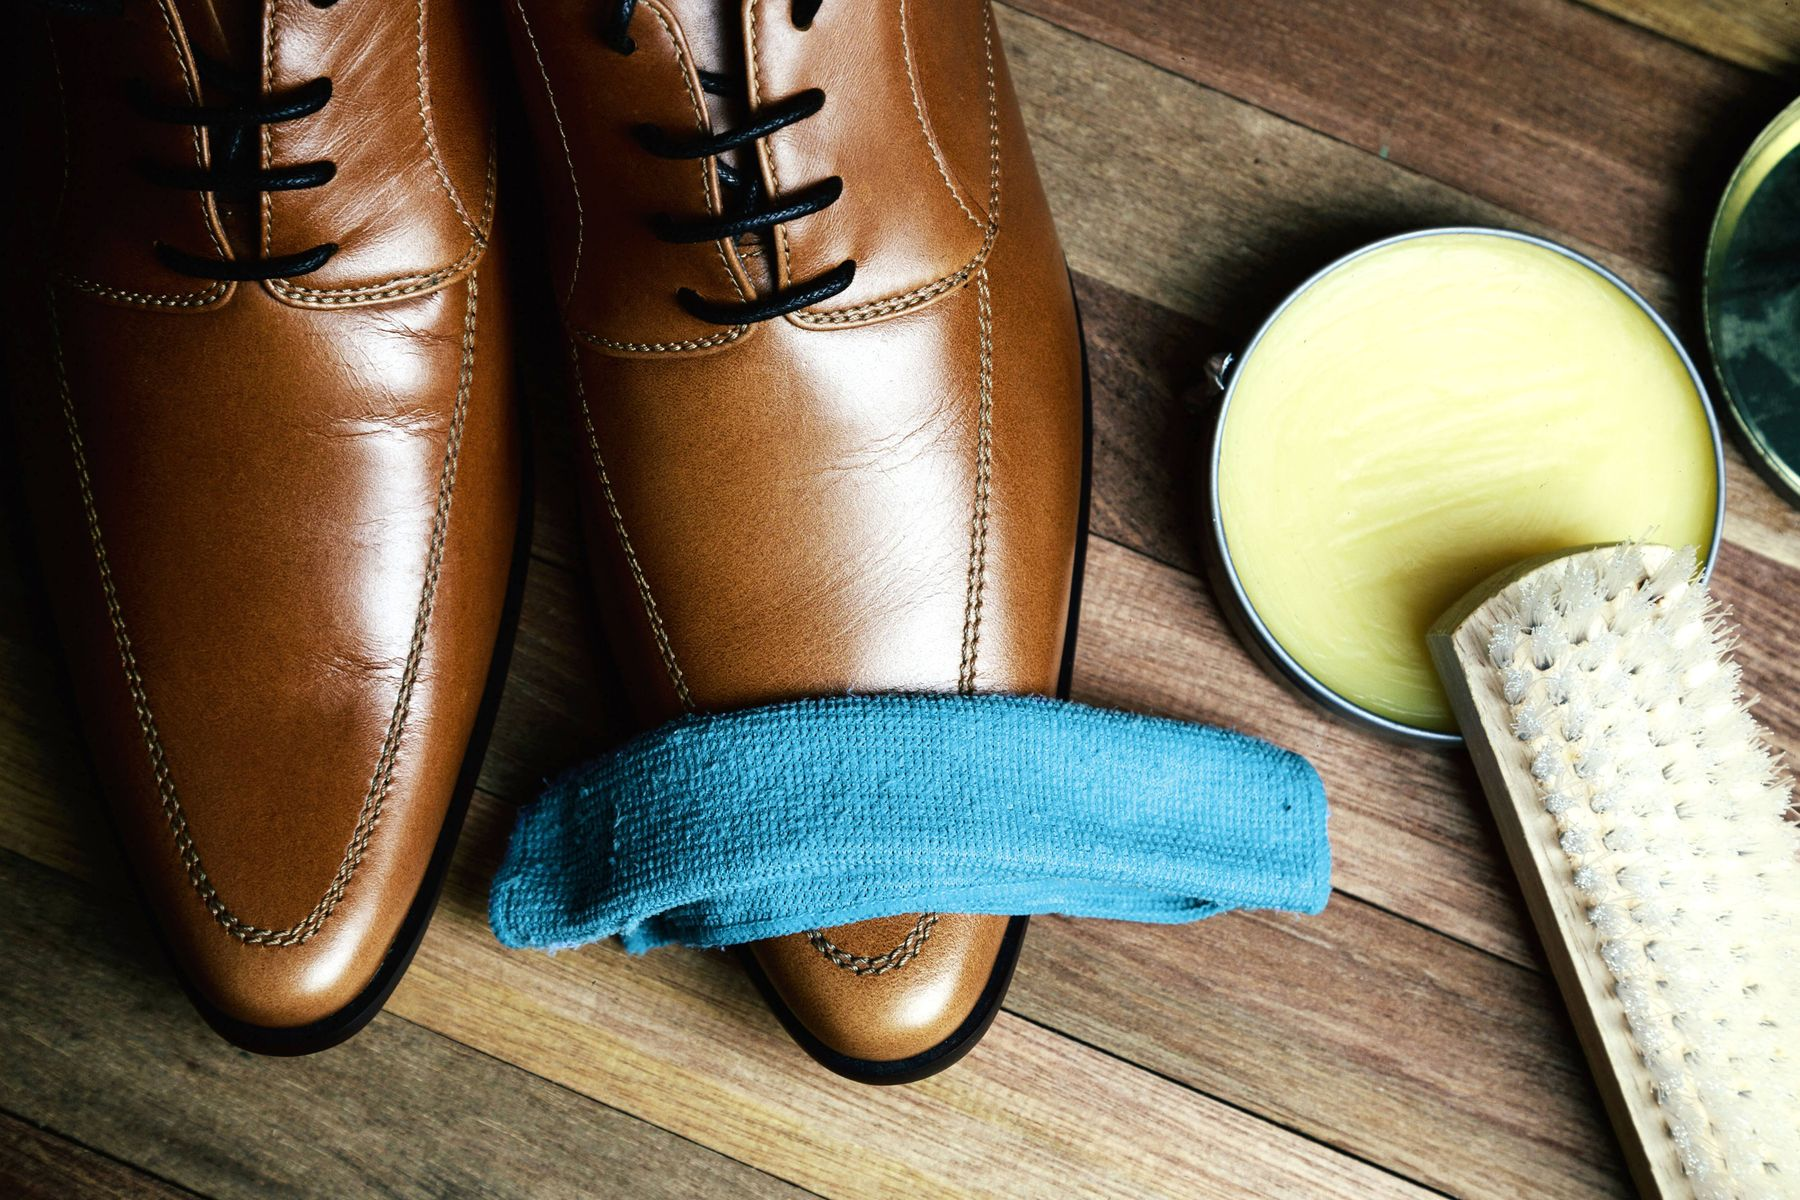 leather shoes with wax, polishing cloth and brush